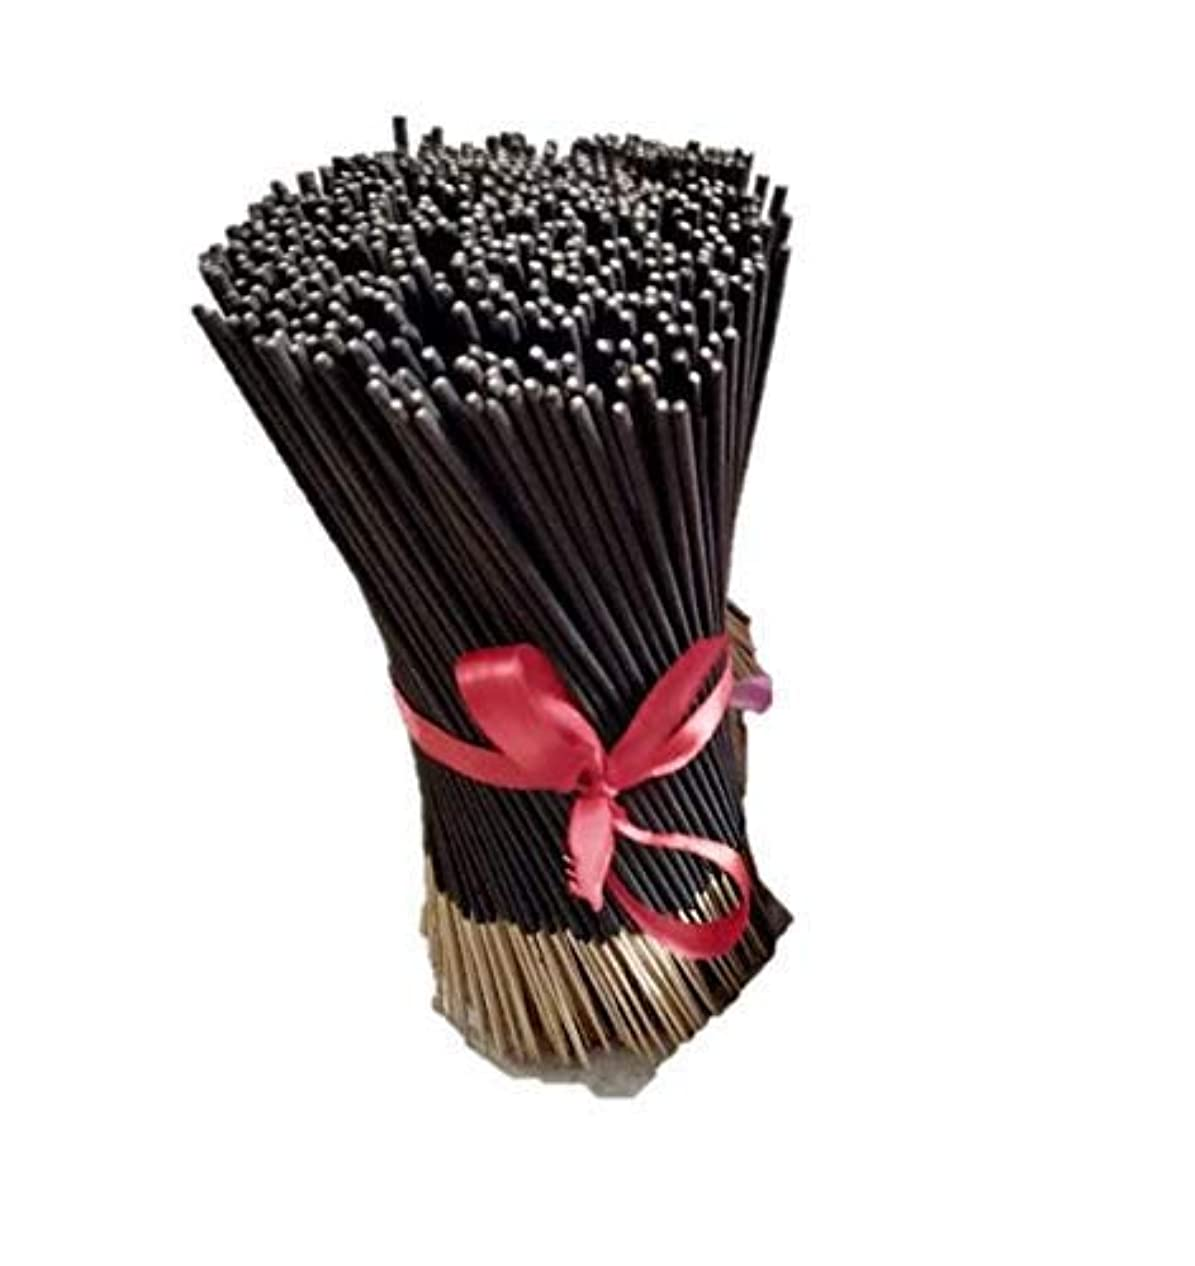 真空満足させる設置Aroma Natural Products Raw Charcoal Incense Stick 1 Kilograms